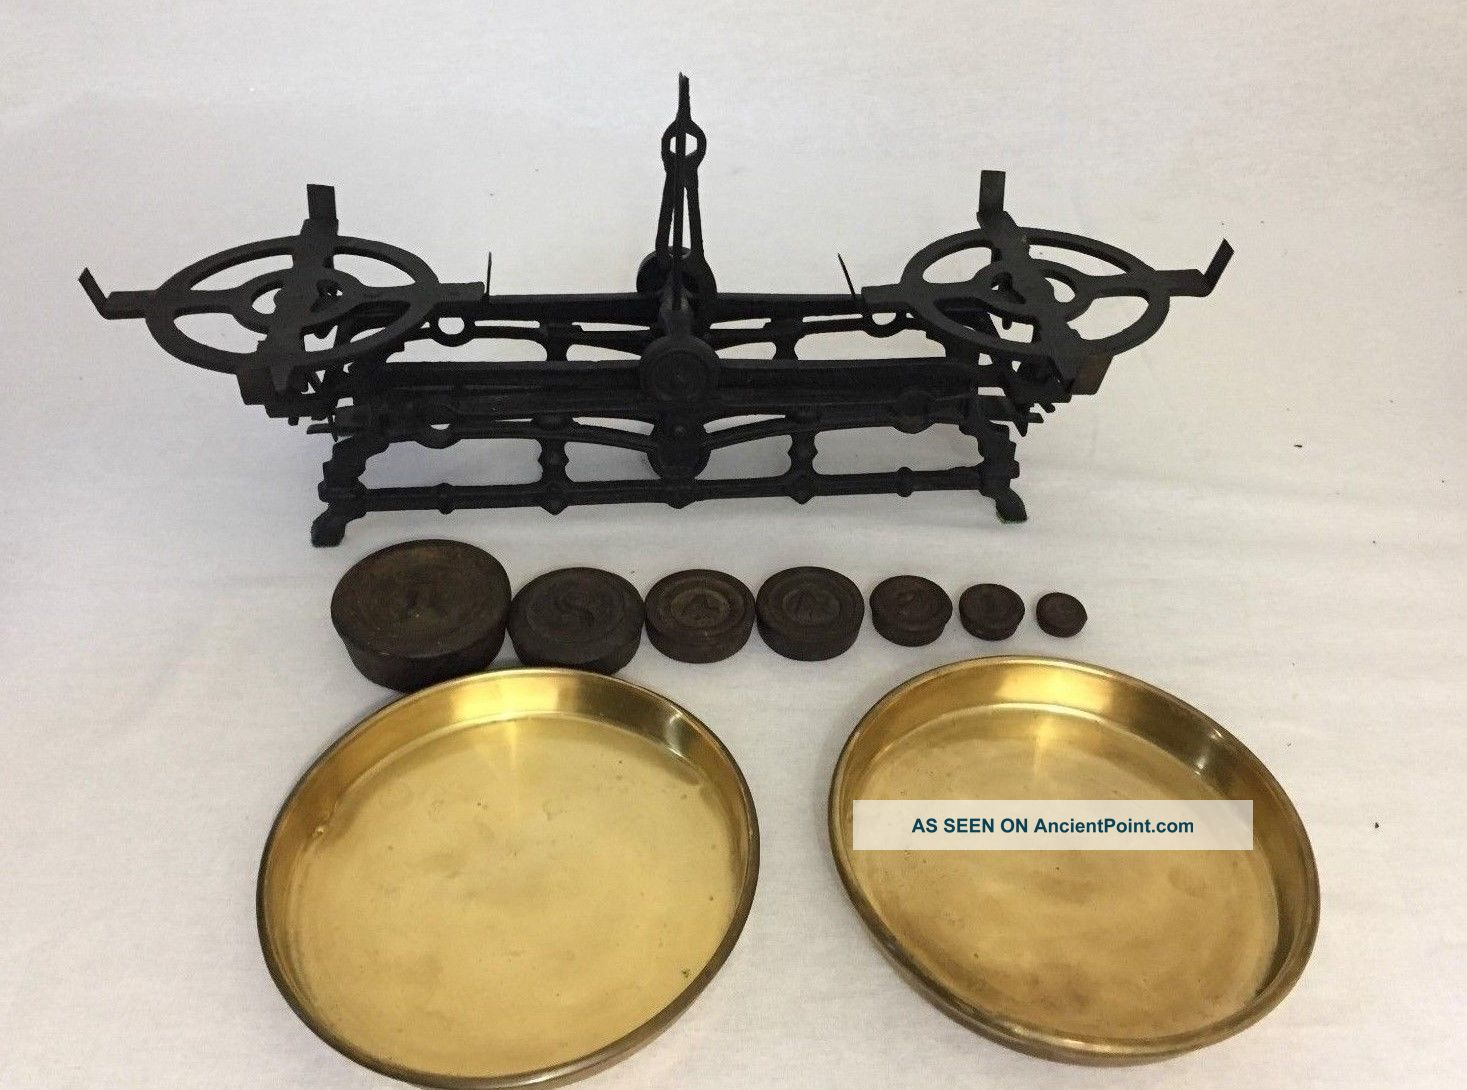 Antique Cast Iron Balancing Beam Counter Scale 3kg W/ Brass Pans & Weights Scales photo